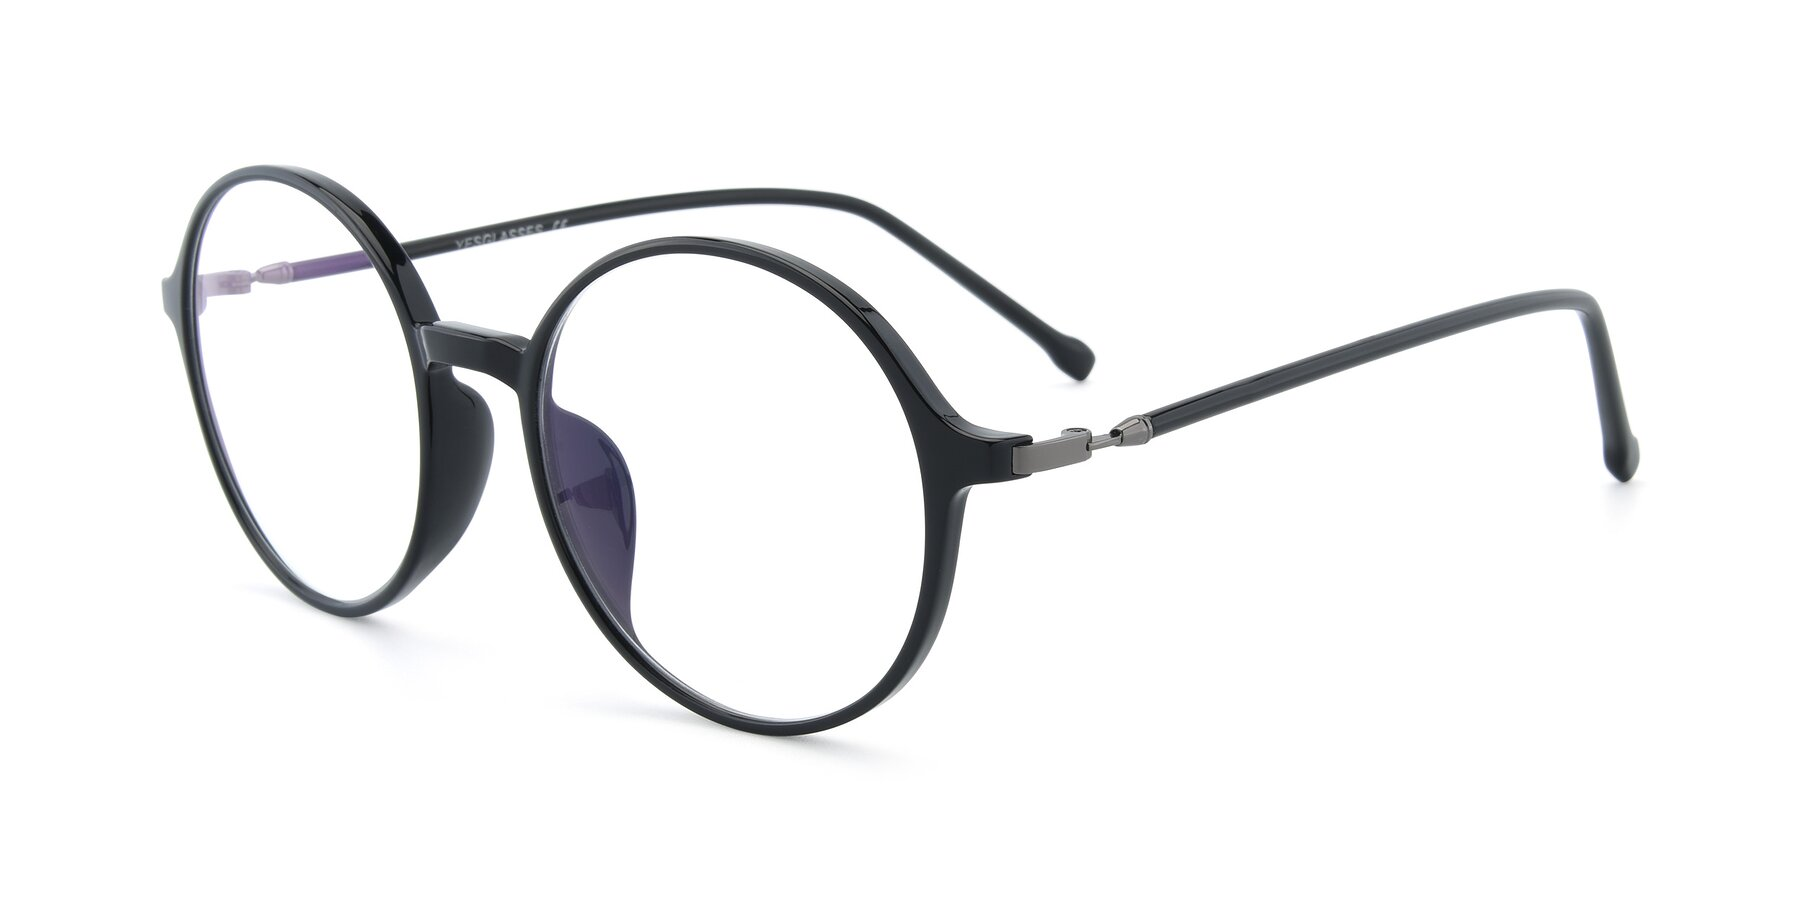 Angle of 12026 in Black with Clear Eyeglass Lenses